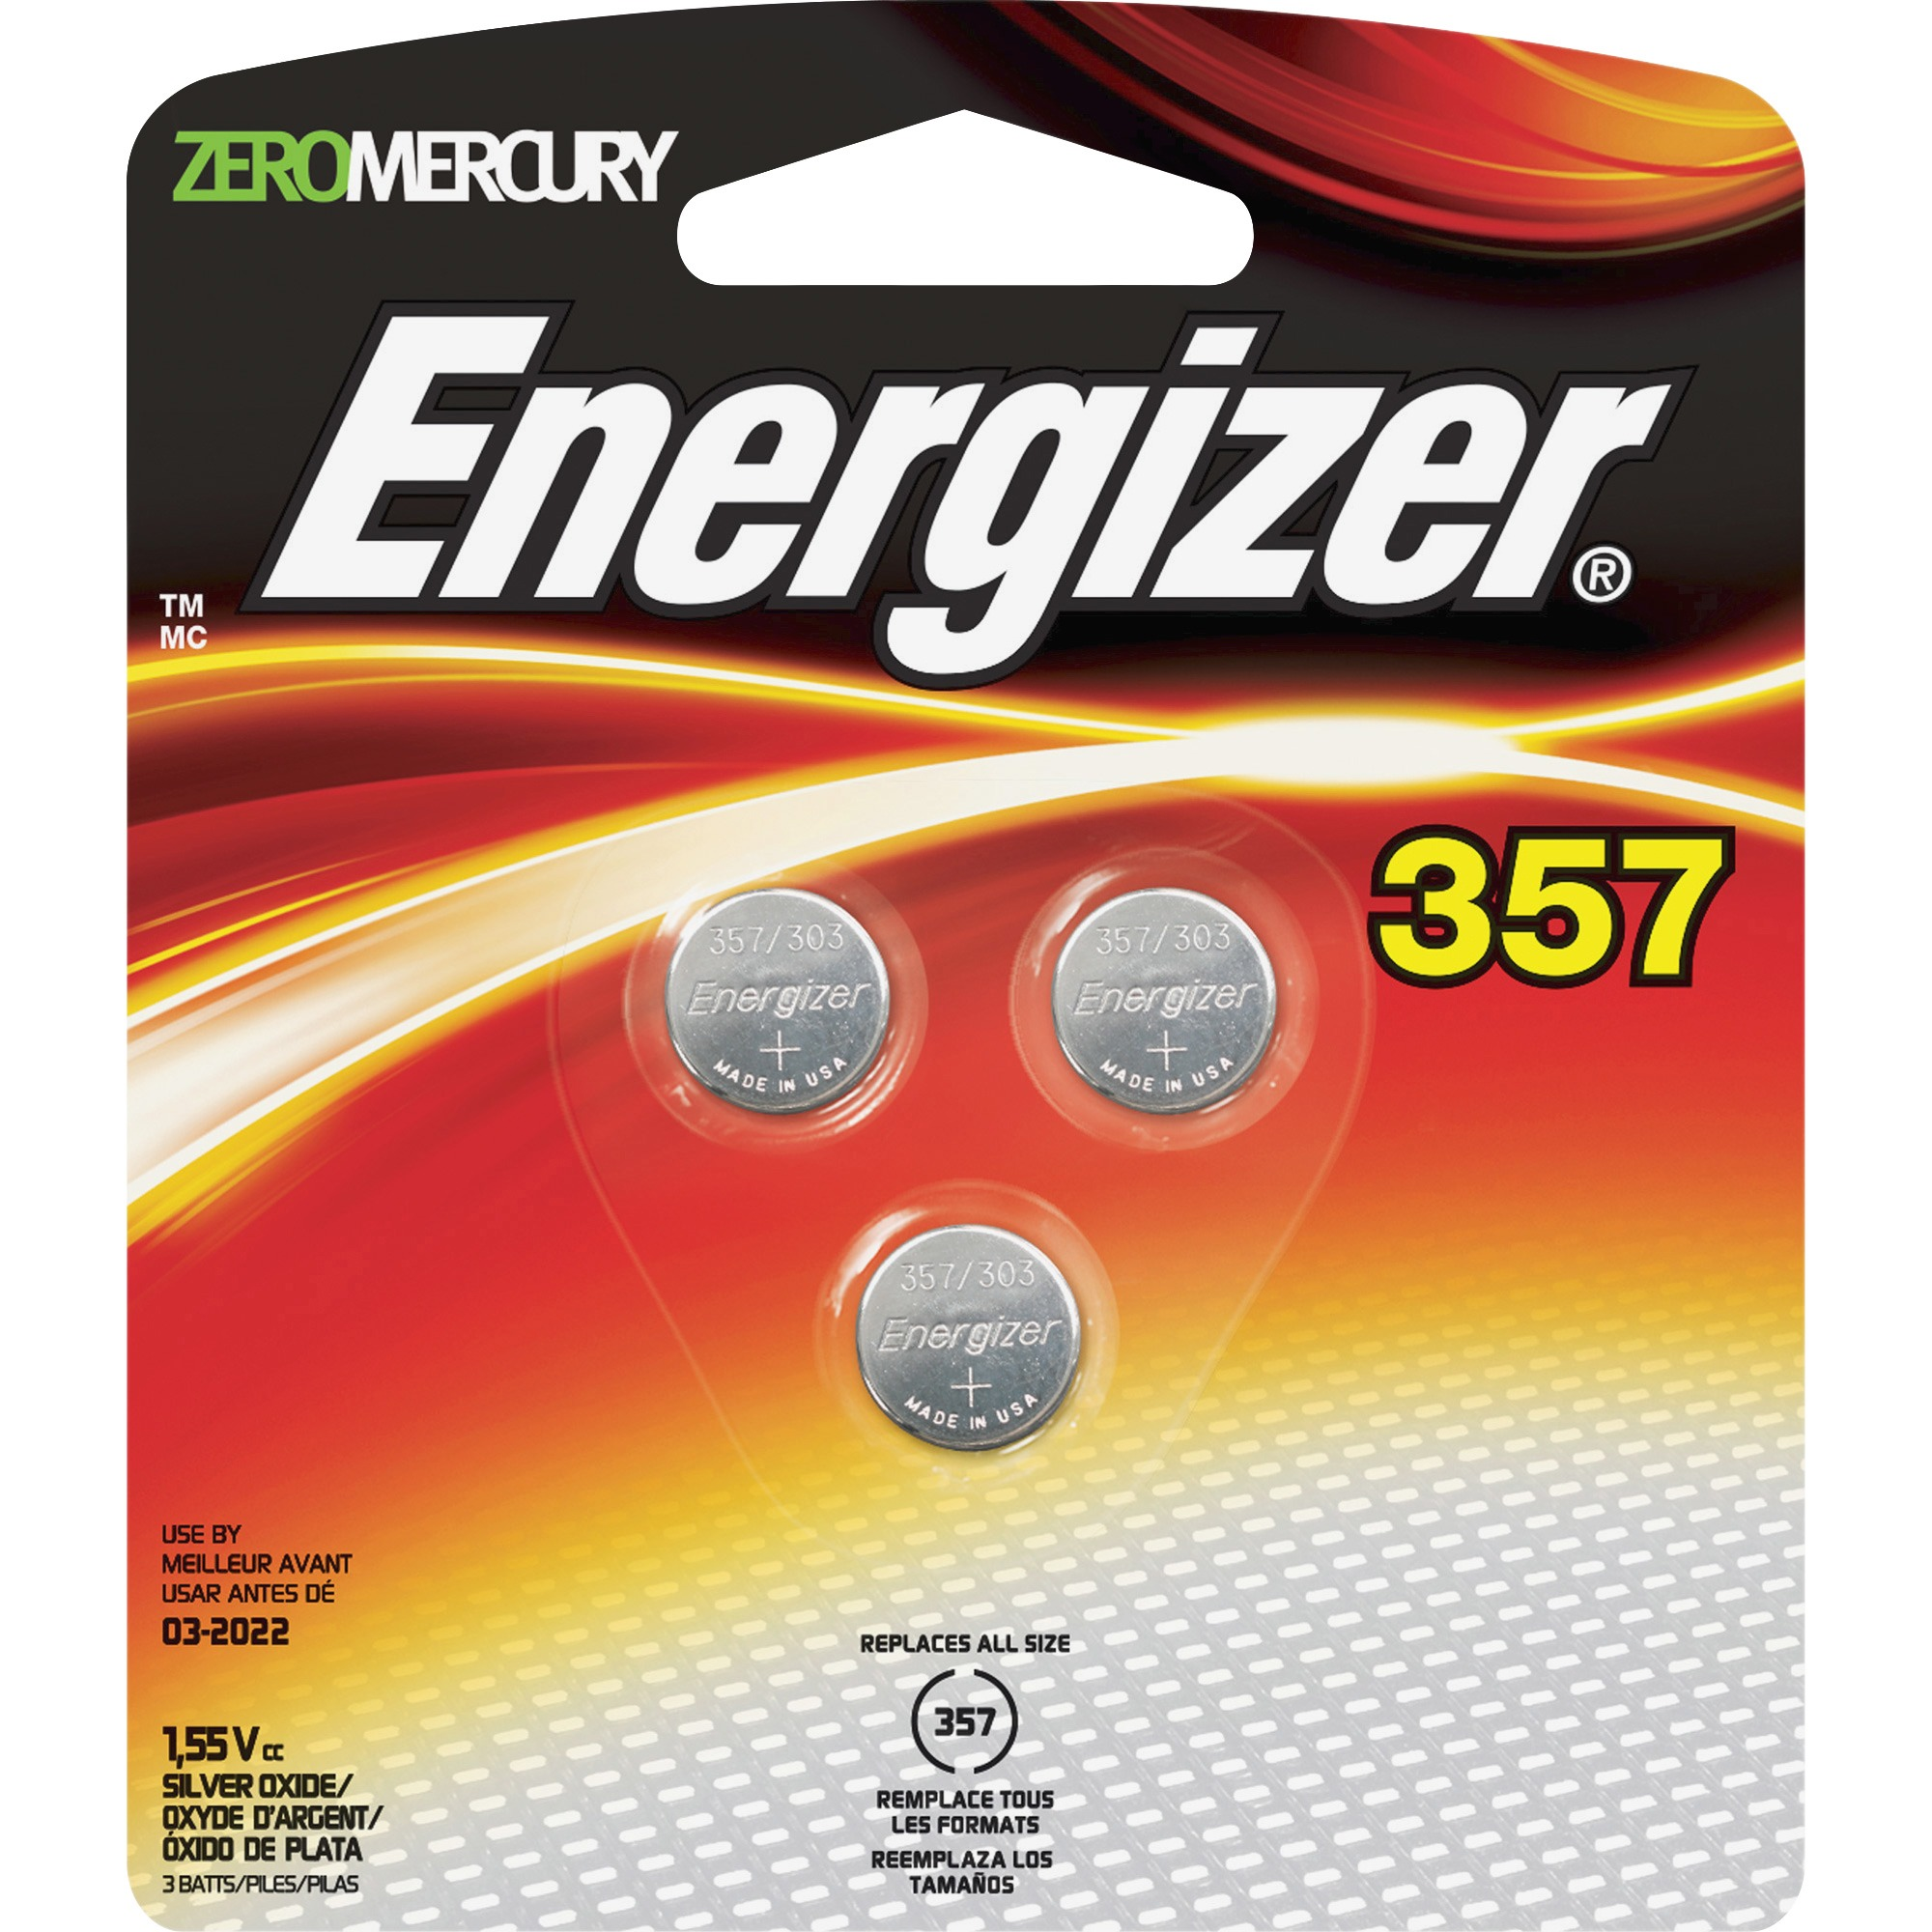 Energizer 357 Silver Oxide Button Battery, 3-Pack